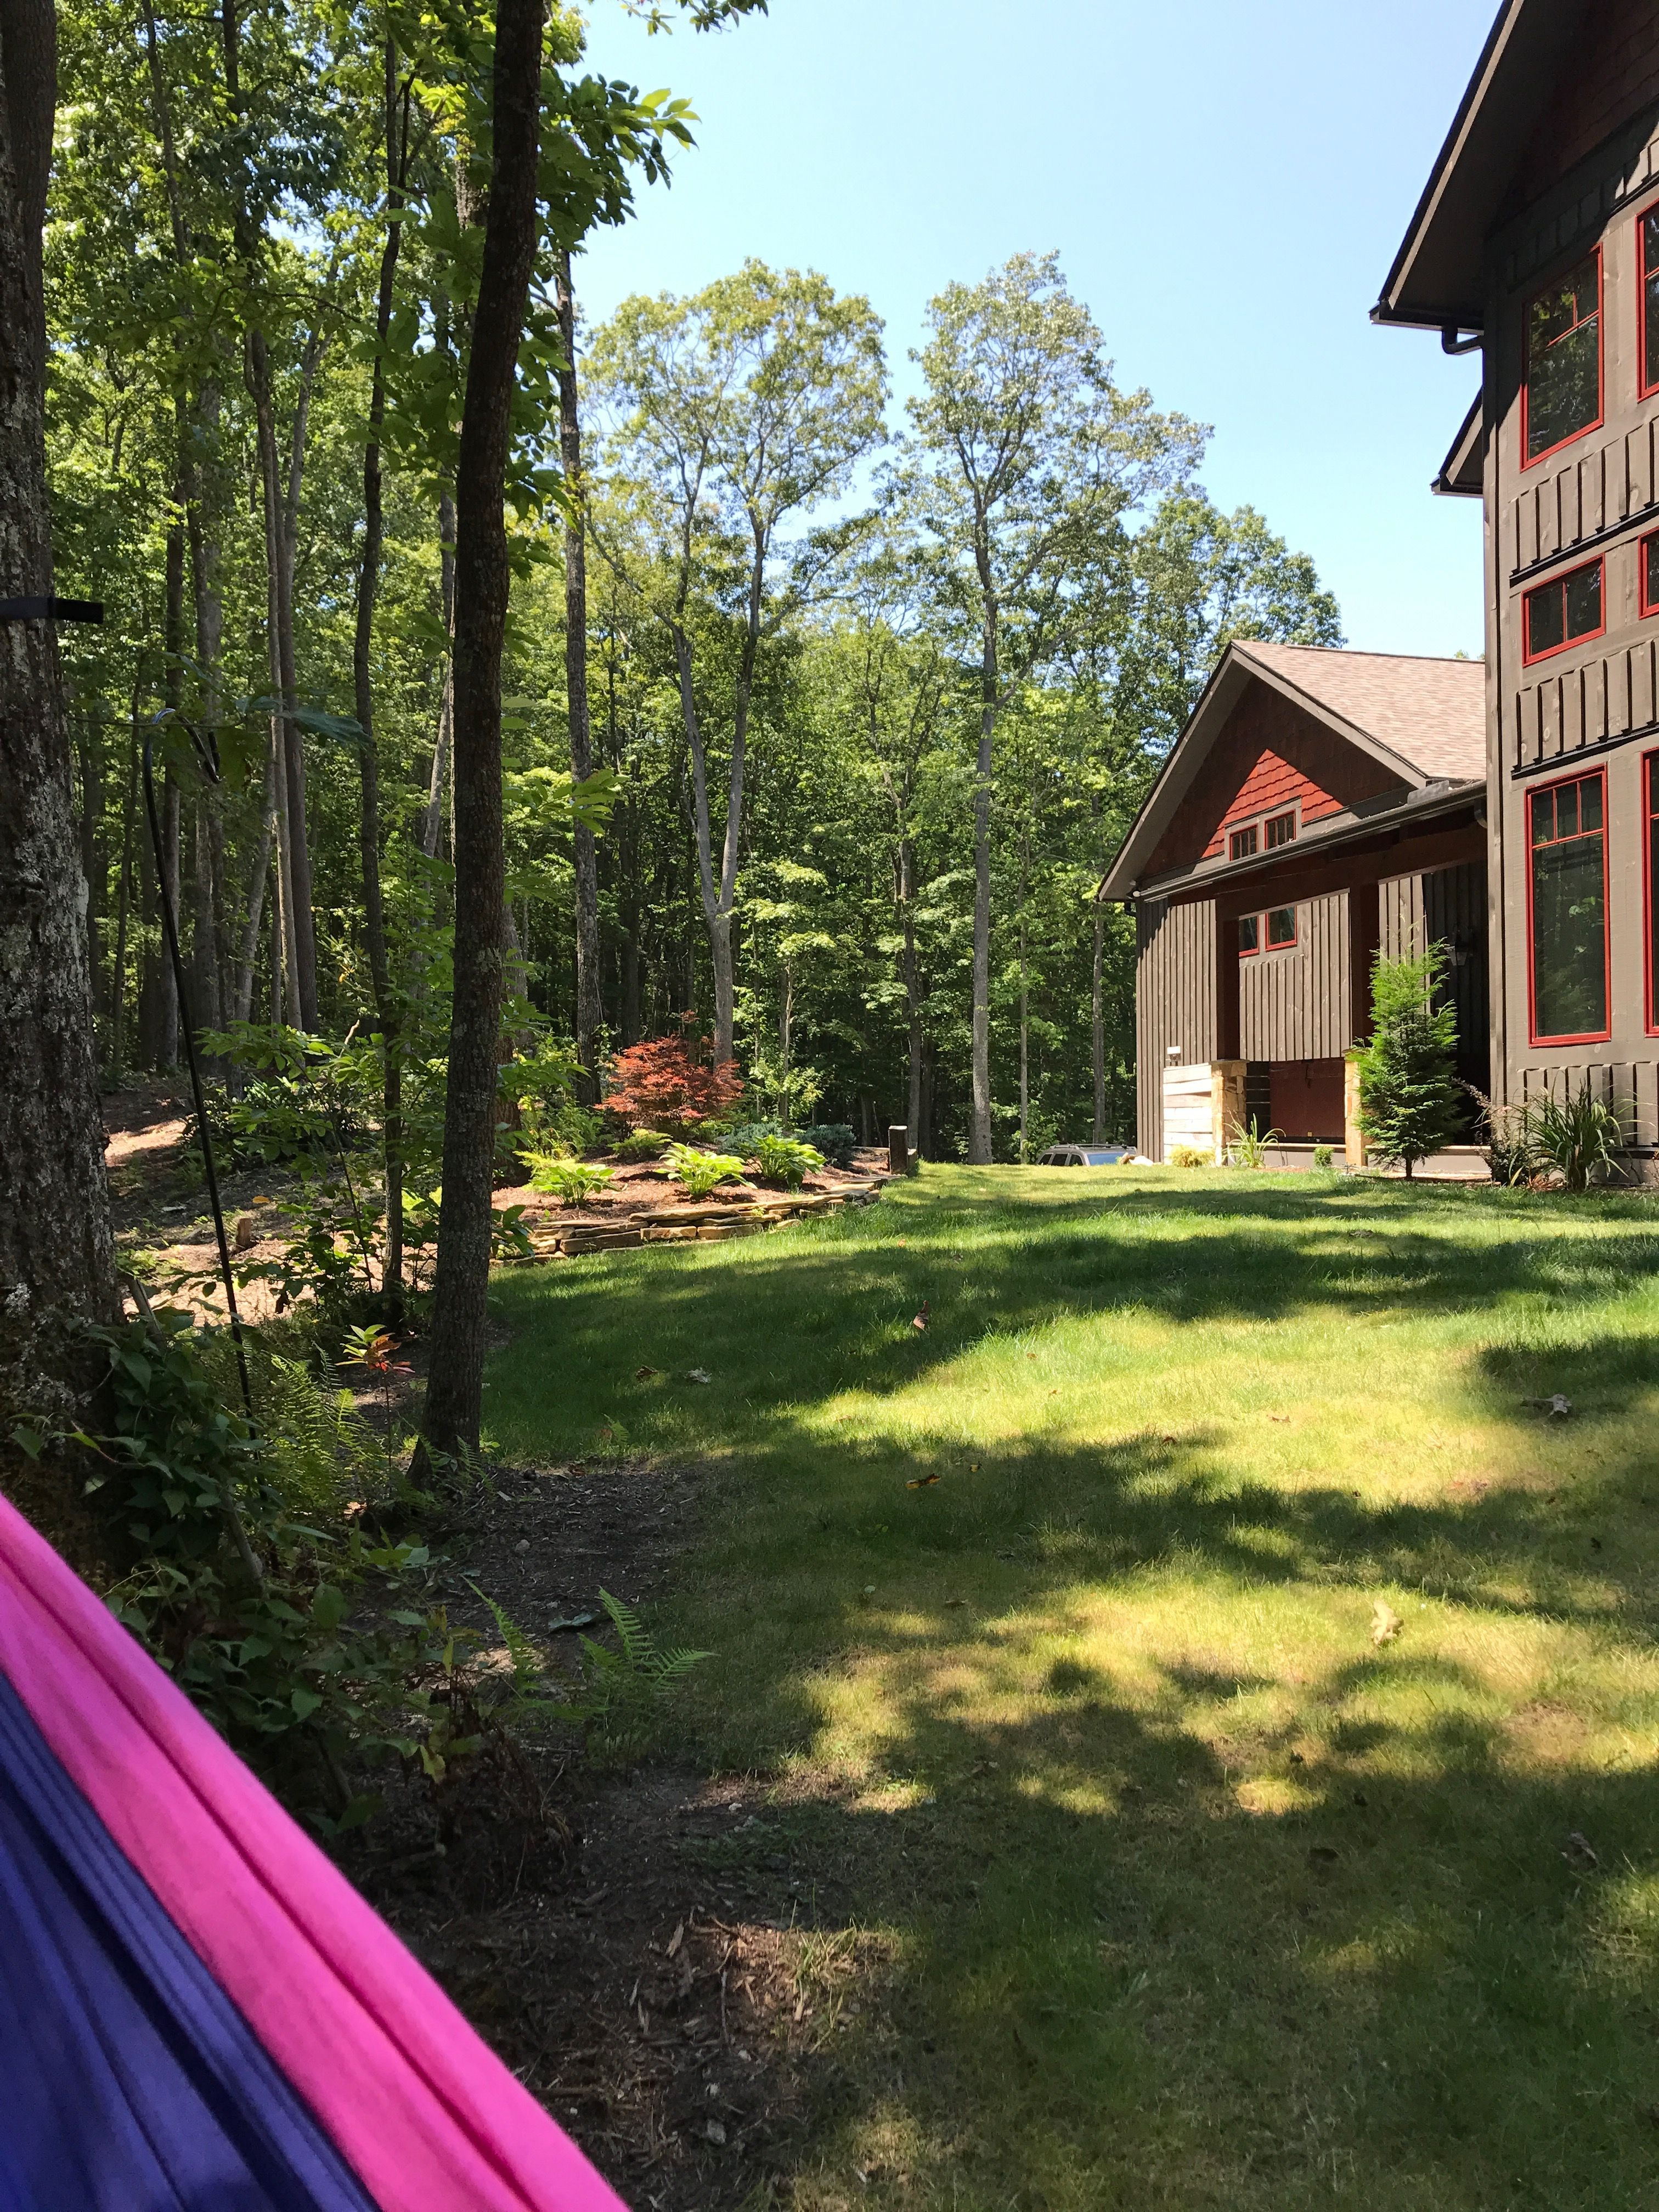 Pin By Deanna Lockie On Vacation Rental In Boone Nc Apartments For Rent Townhomes For Rent Apartments In Atlanta Ga